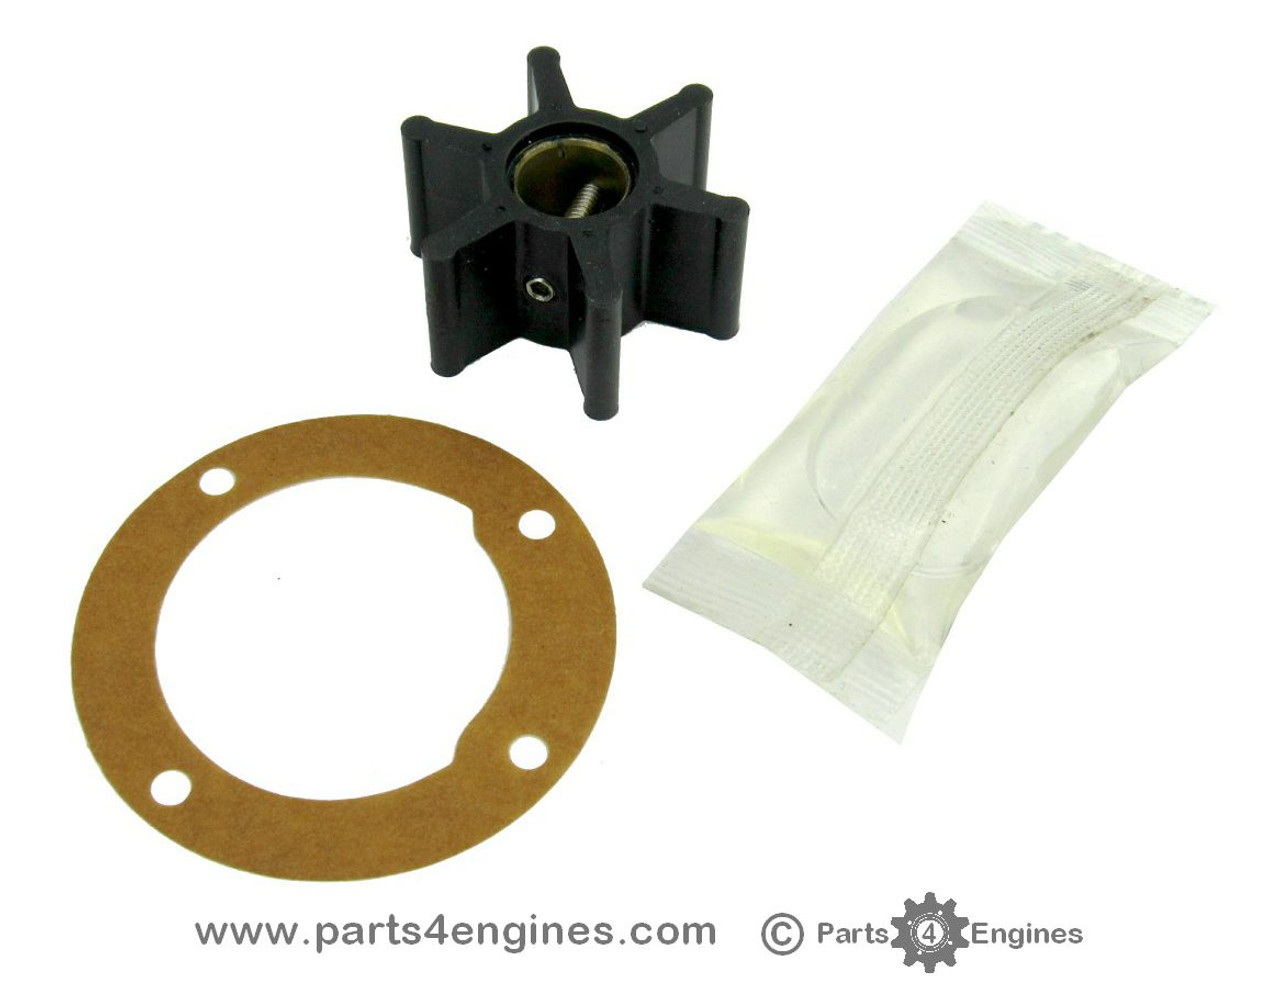 Volvo Penta 2002 raw water pump impeller kit from Parts4engines.com